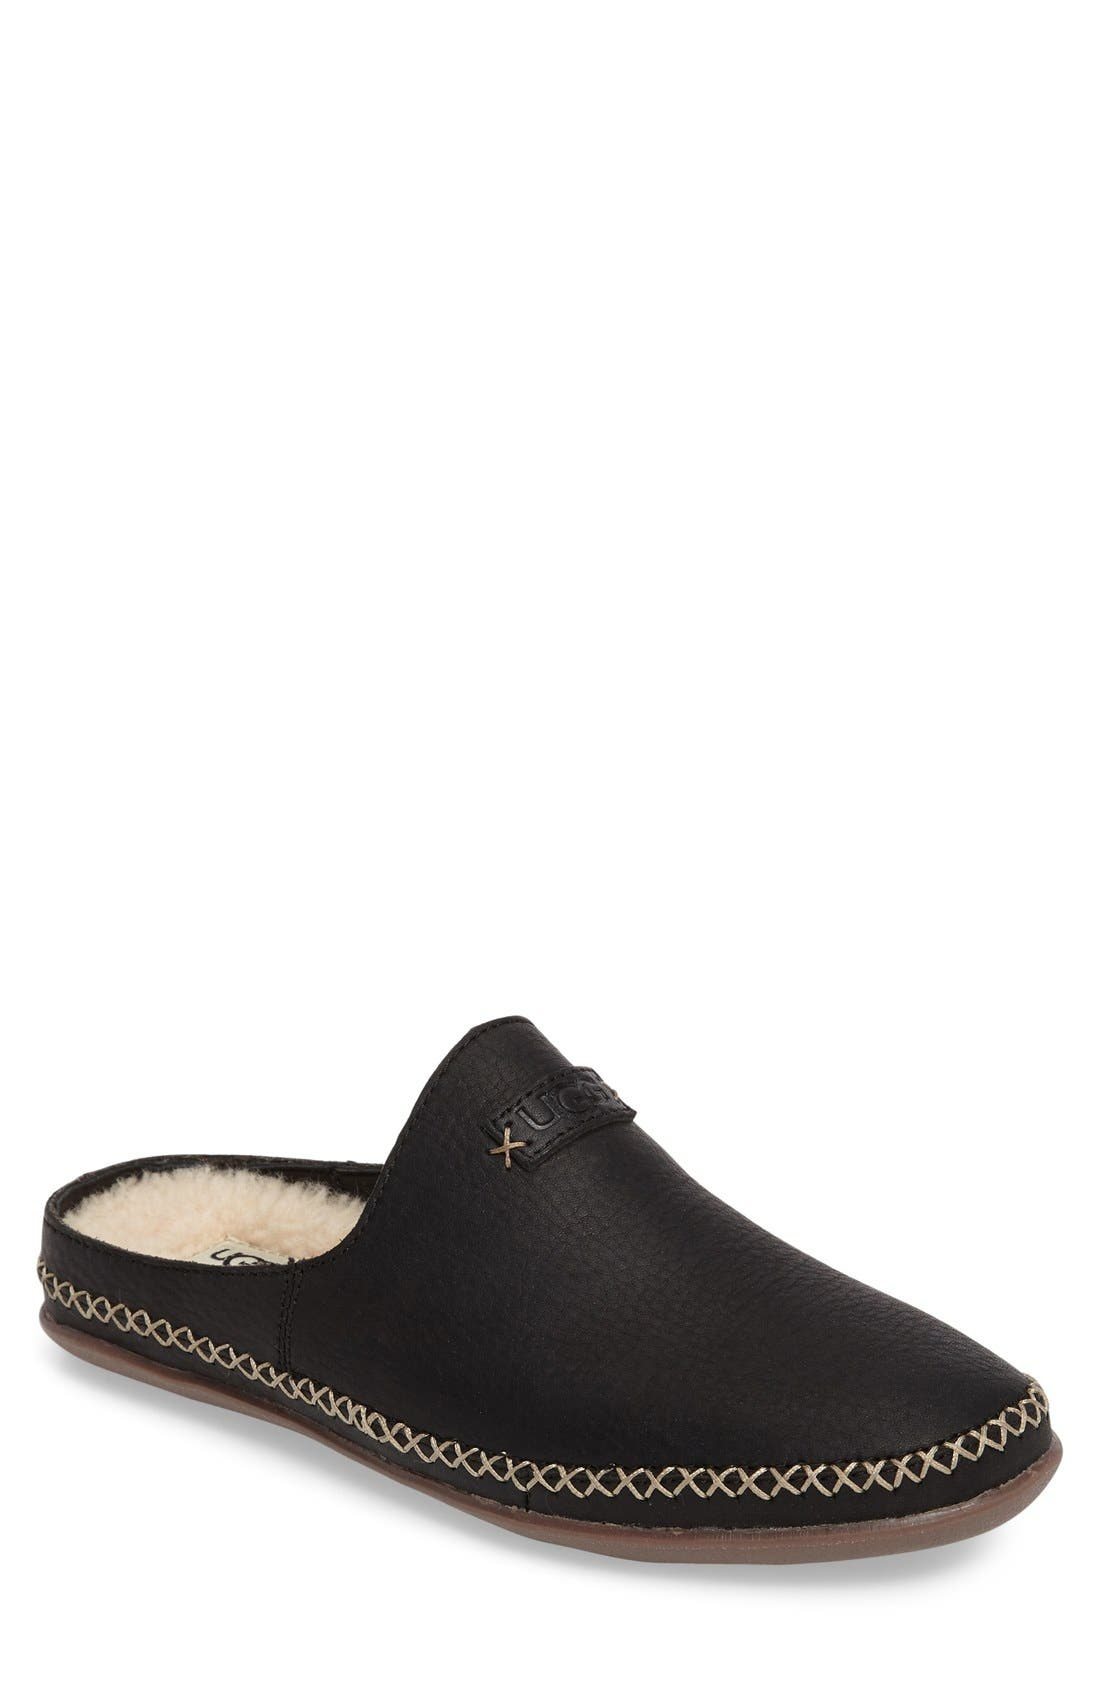 Tamara Slipper,                             Main thumbnail 1, color,                             Black Leather